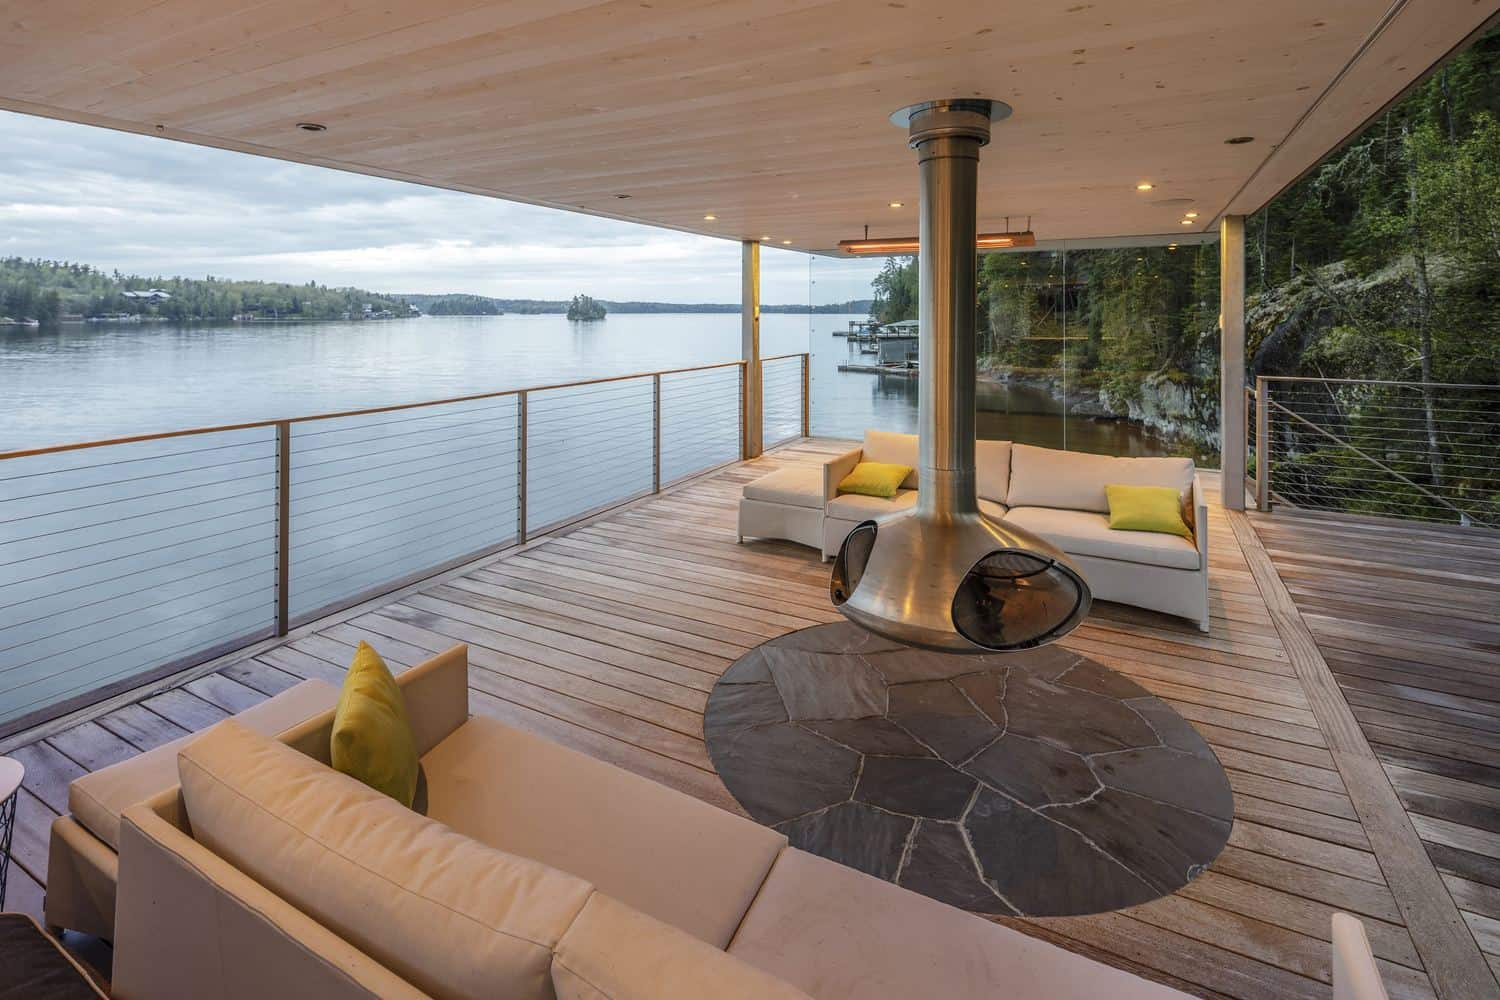 Spectacular Boat House designed by Cibinel Architecture in Canada